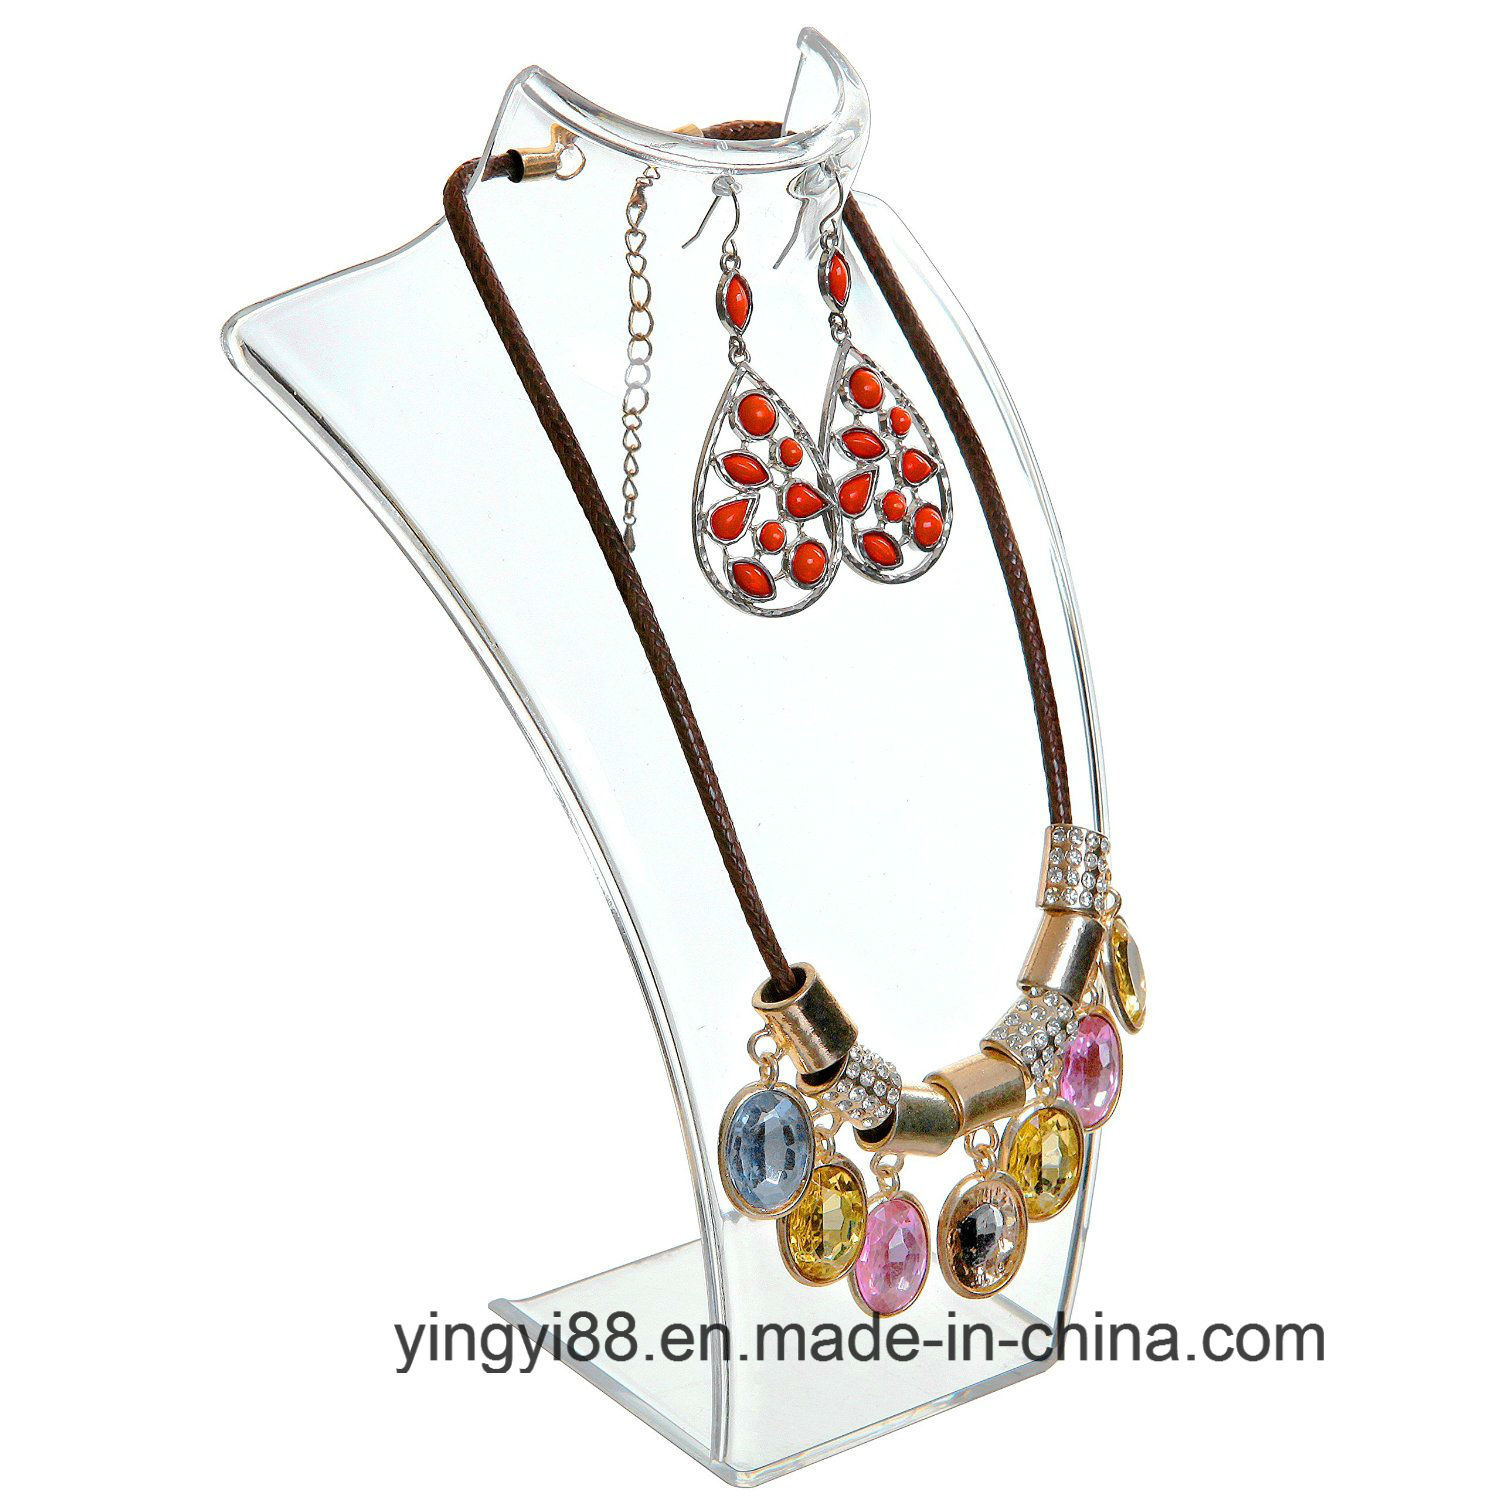 Factory Direct Sale Acrylic Jewelry Display for Necklaces